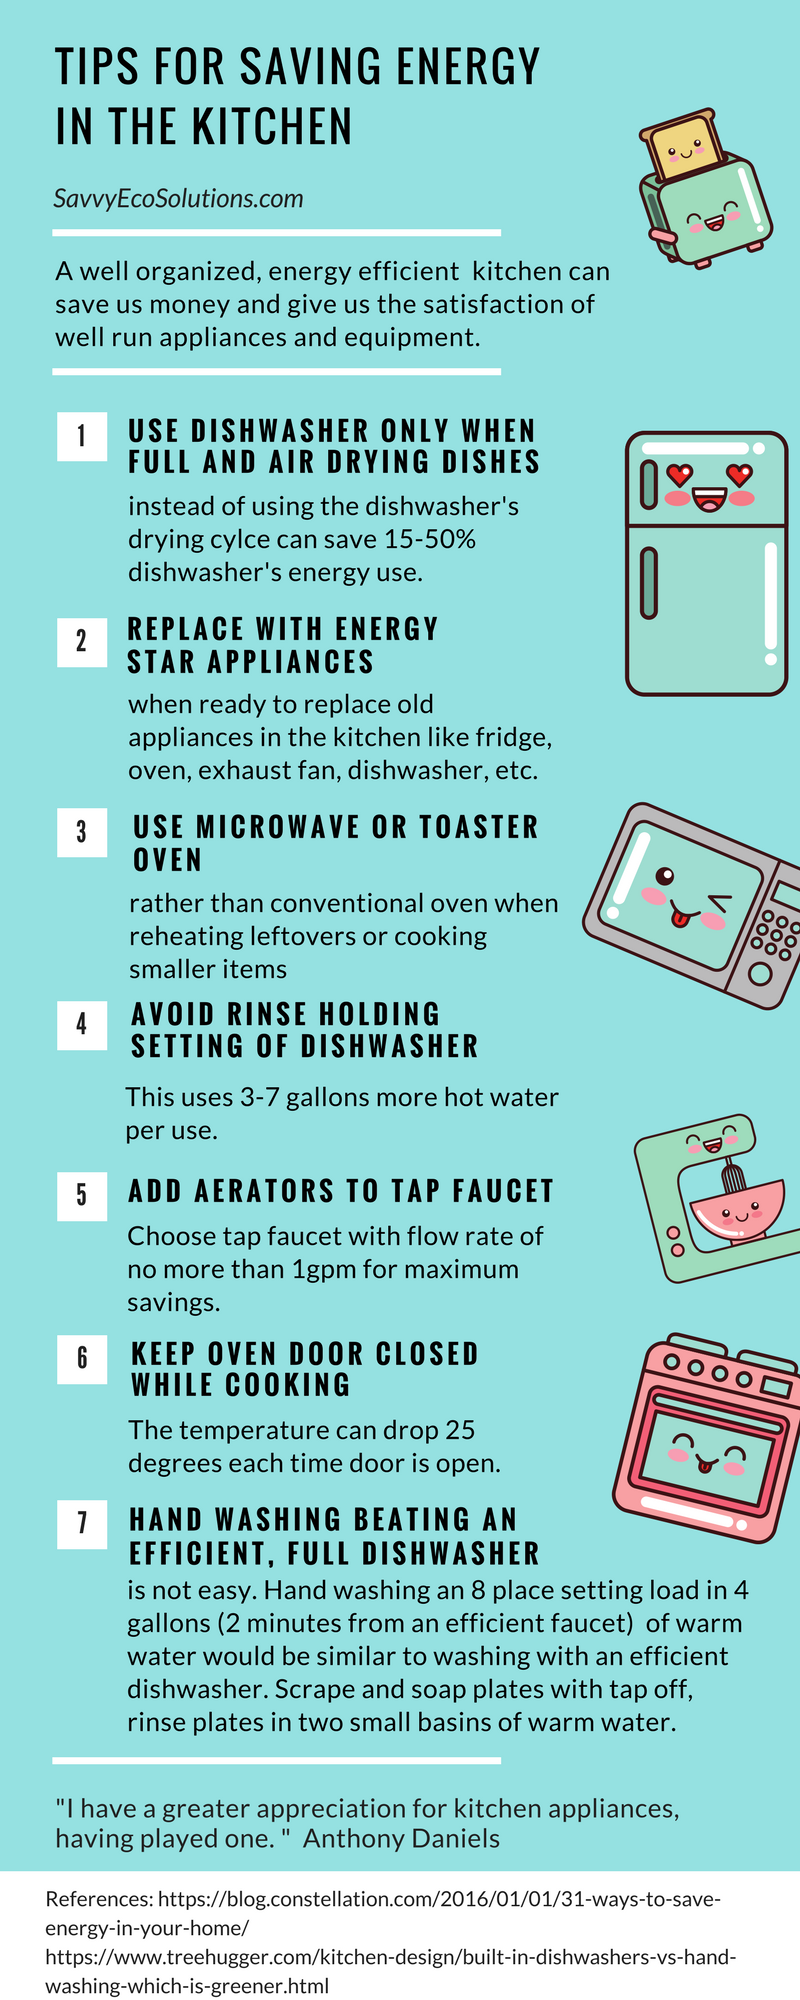 Simple ways to save energy in the kitchen, which benefit us by ...